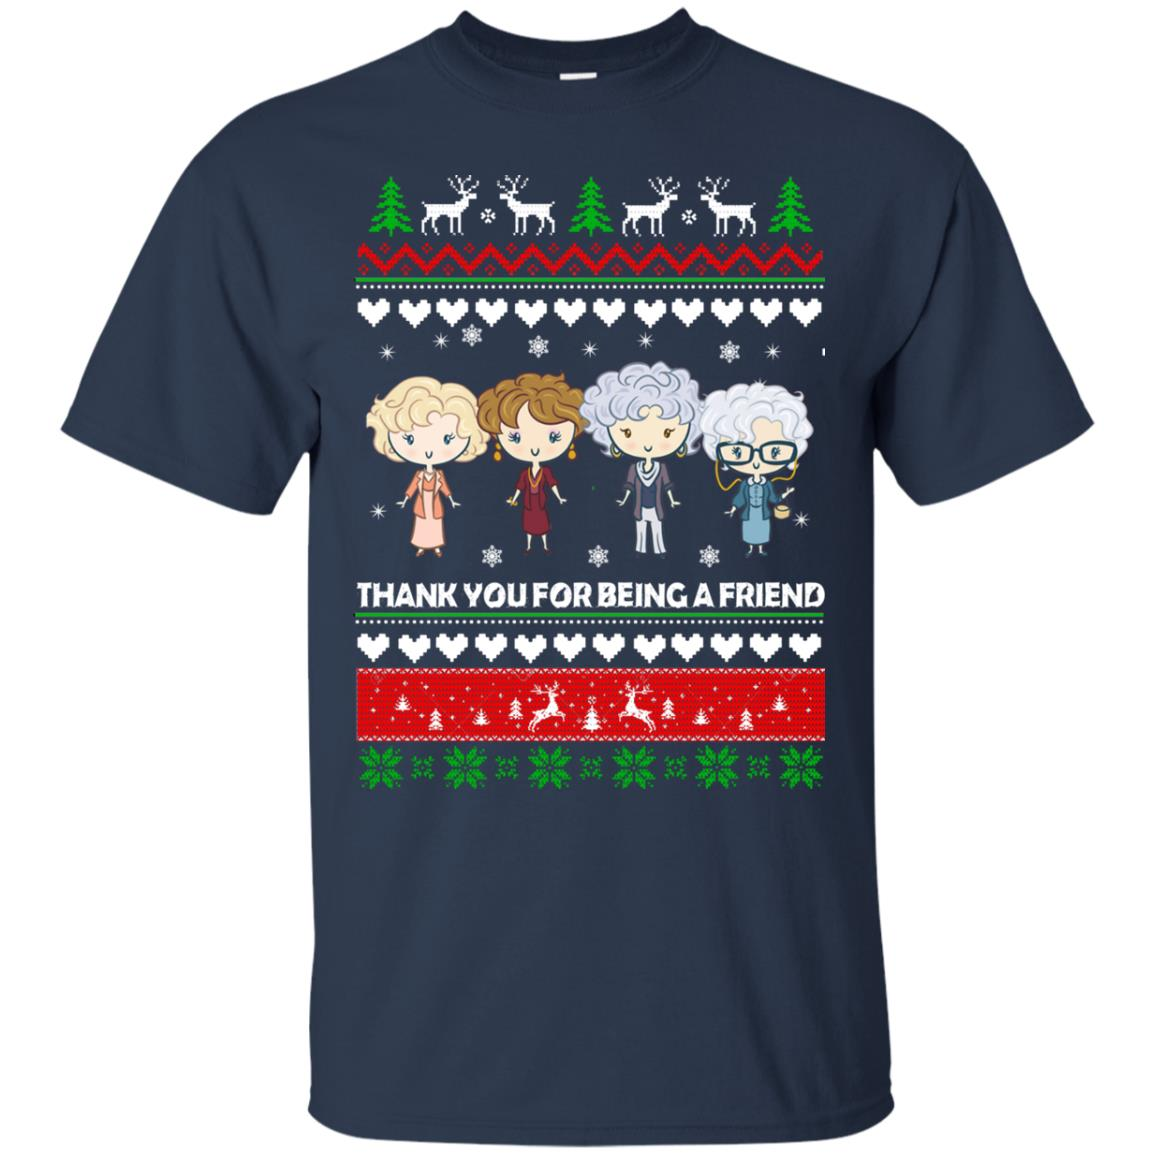 golden girls thank you for being a friend christmas sweater hoodie image 1658 - Girls Christmas Sweater